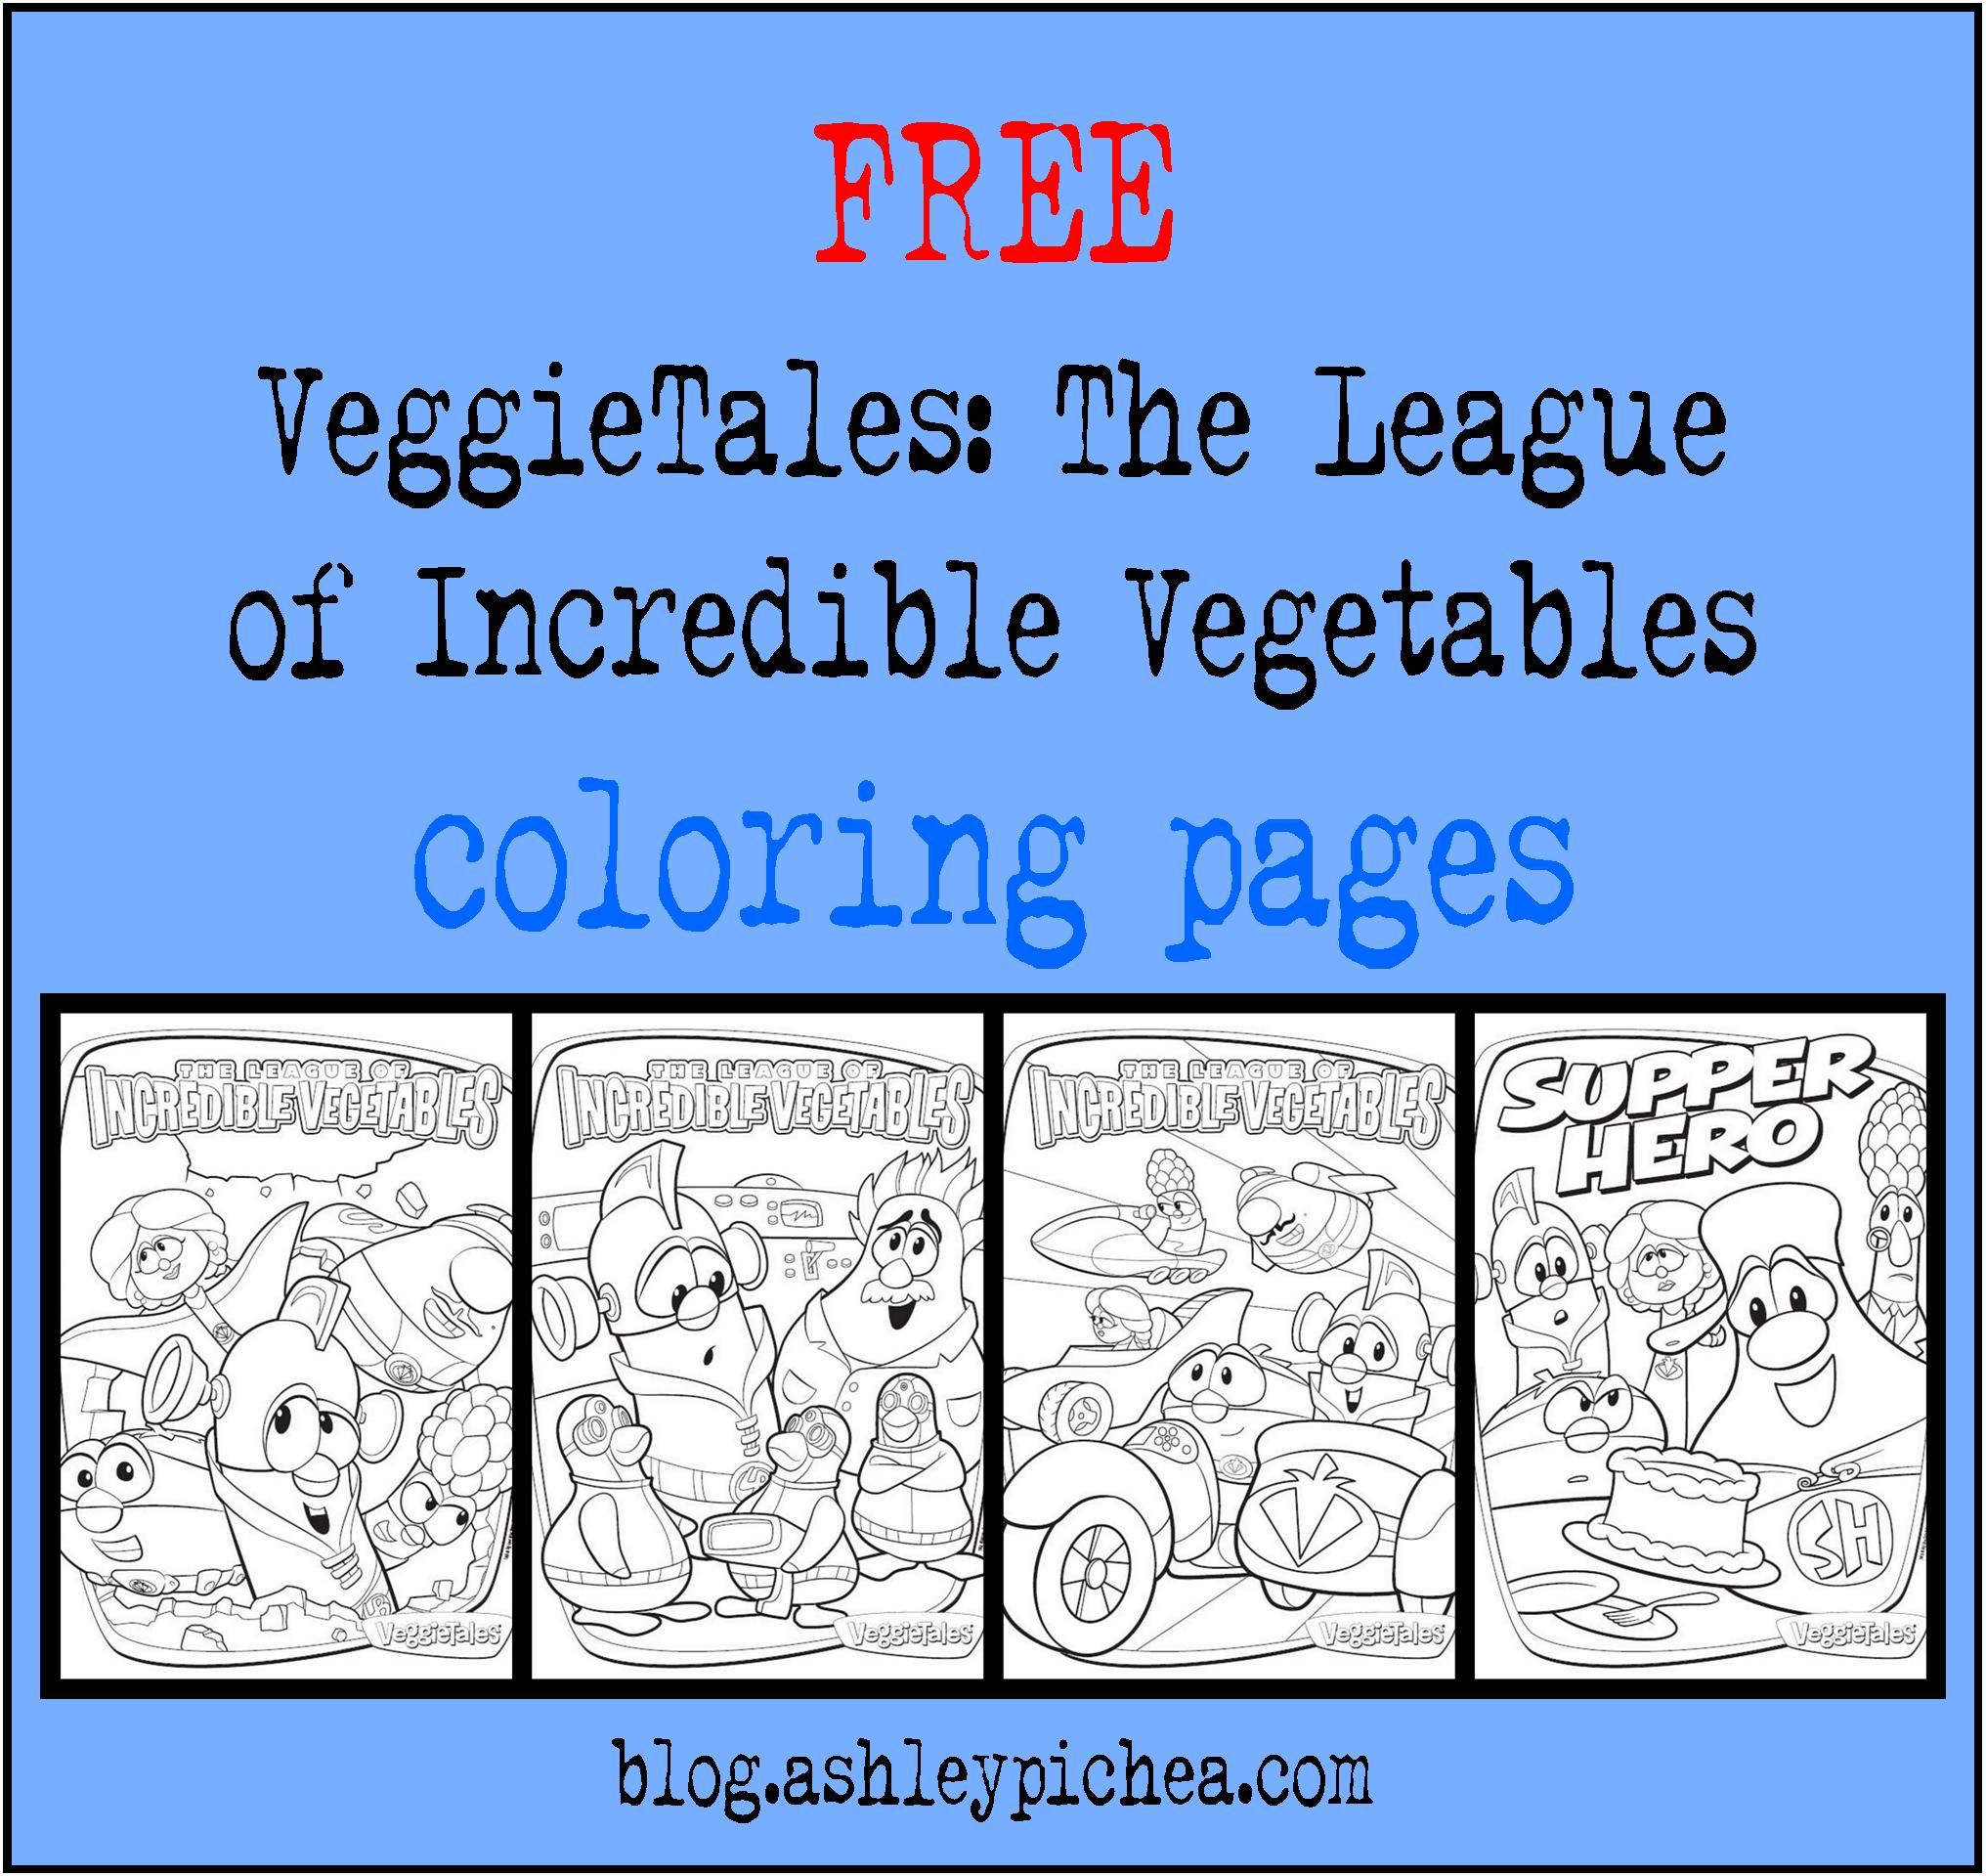 Free coloring pages vegetables - Activities The League Of Incredible Vegetables Free Download Coloring Pages At Http Veggietales Com League Activities Superhero Party Pinterest